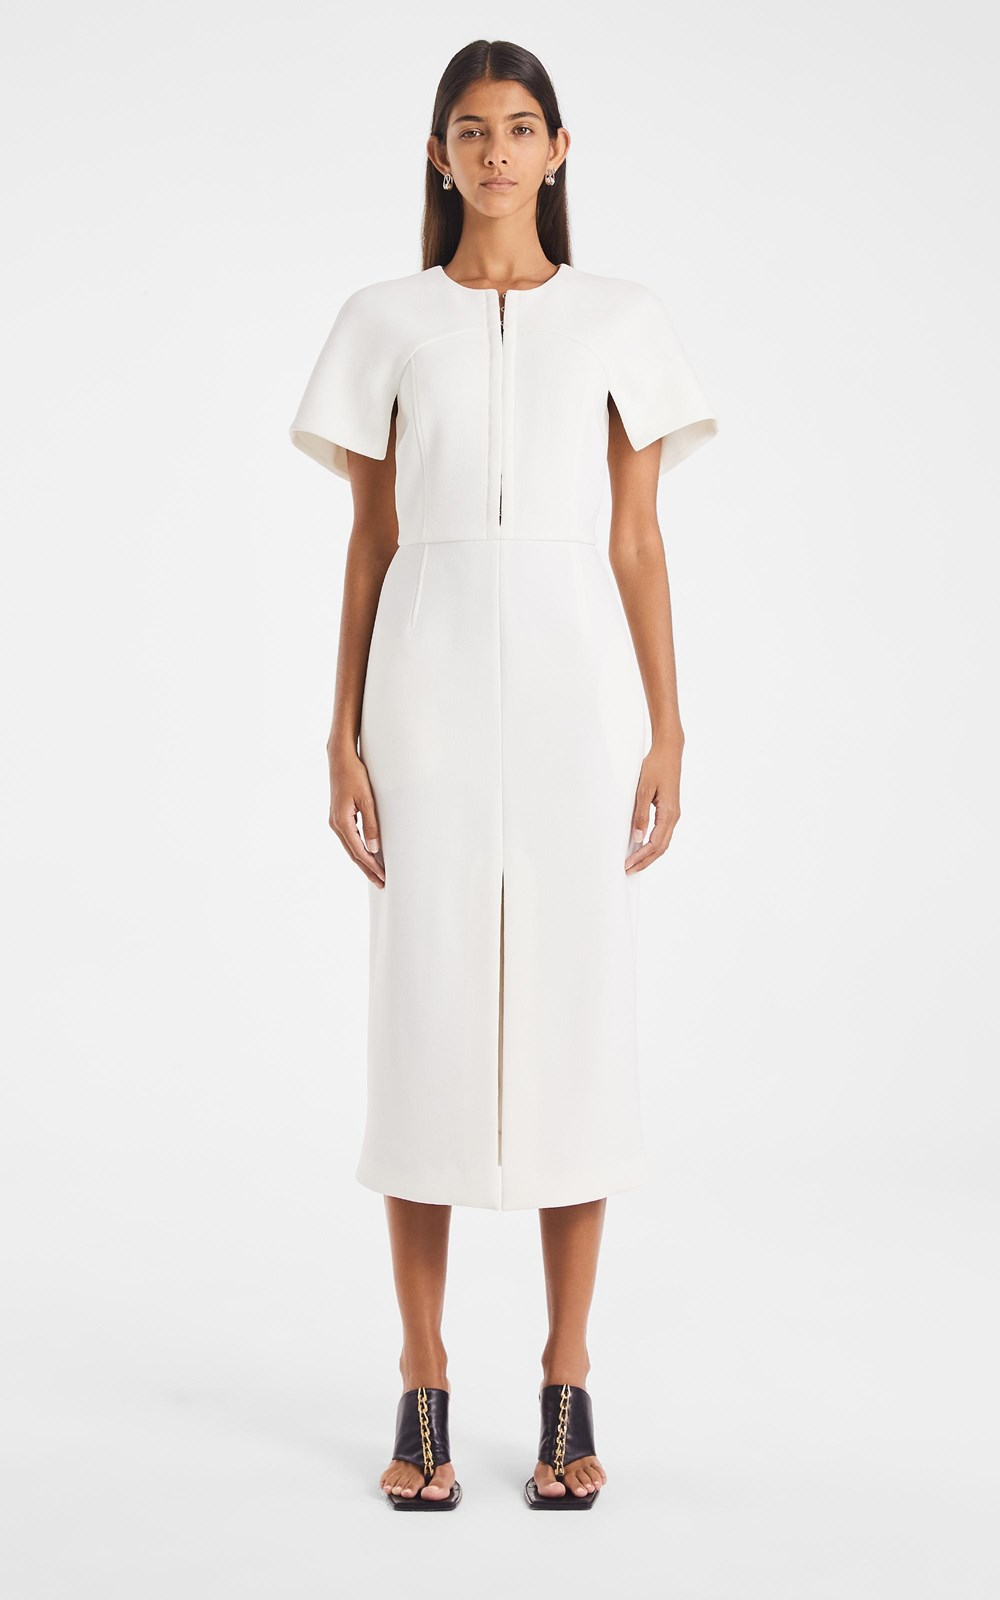 Dresses | HOOK & EYE CREPE SHIFT DRESS